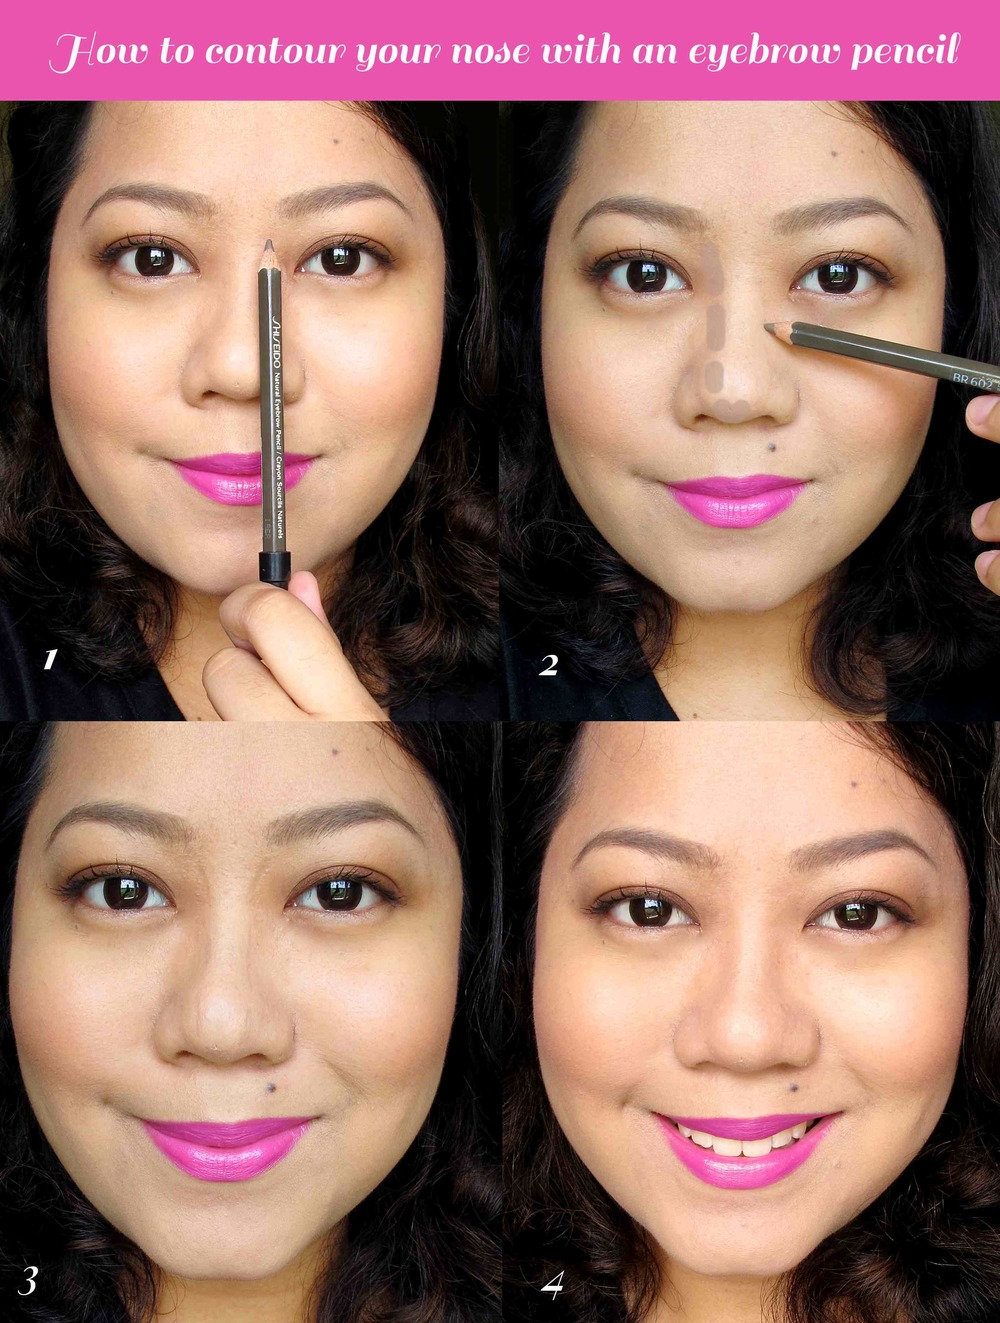 How To Contour The Nose With An Eyebrow Pencil Project Vanity